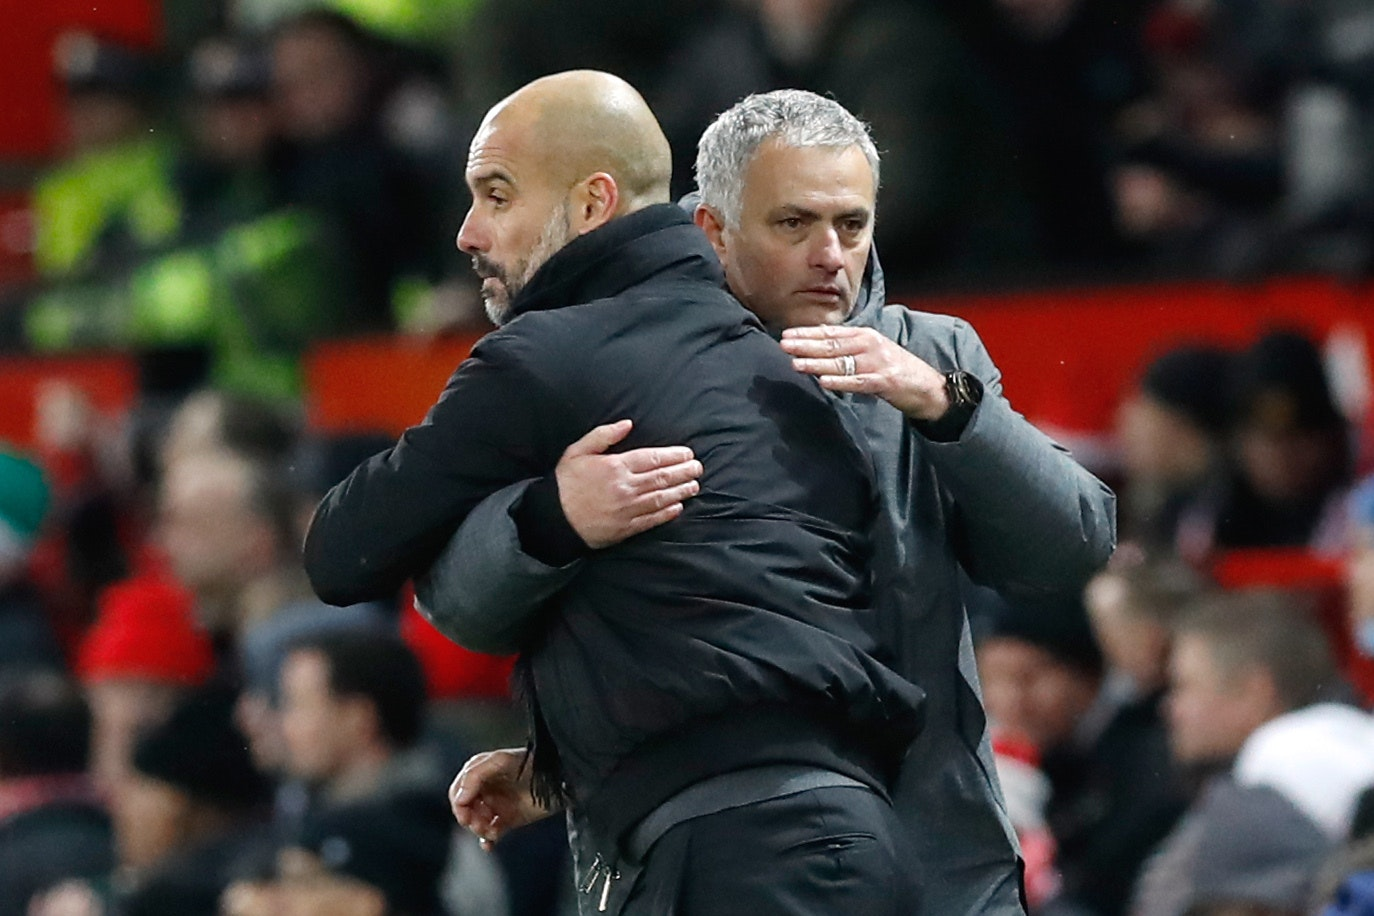 Pep Guardiola (left) faces his old rival Jose Mourinho this weekend